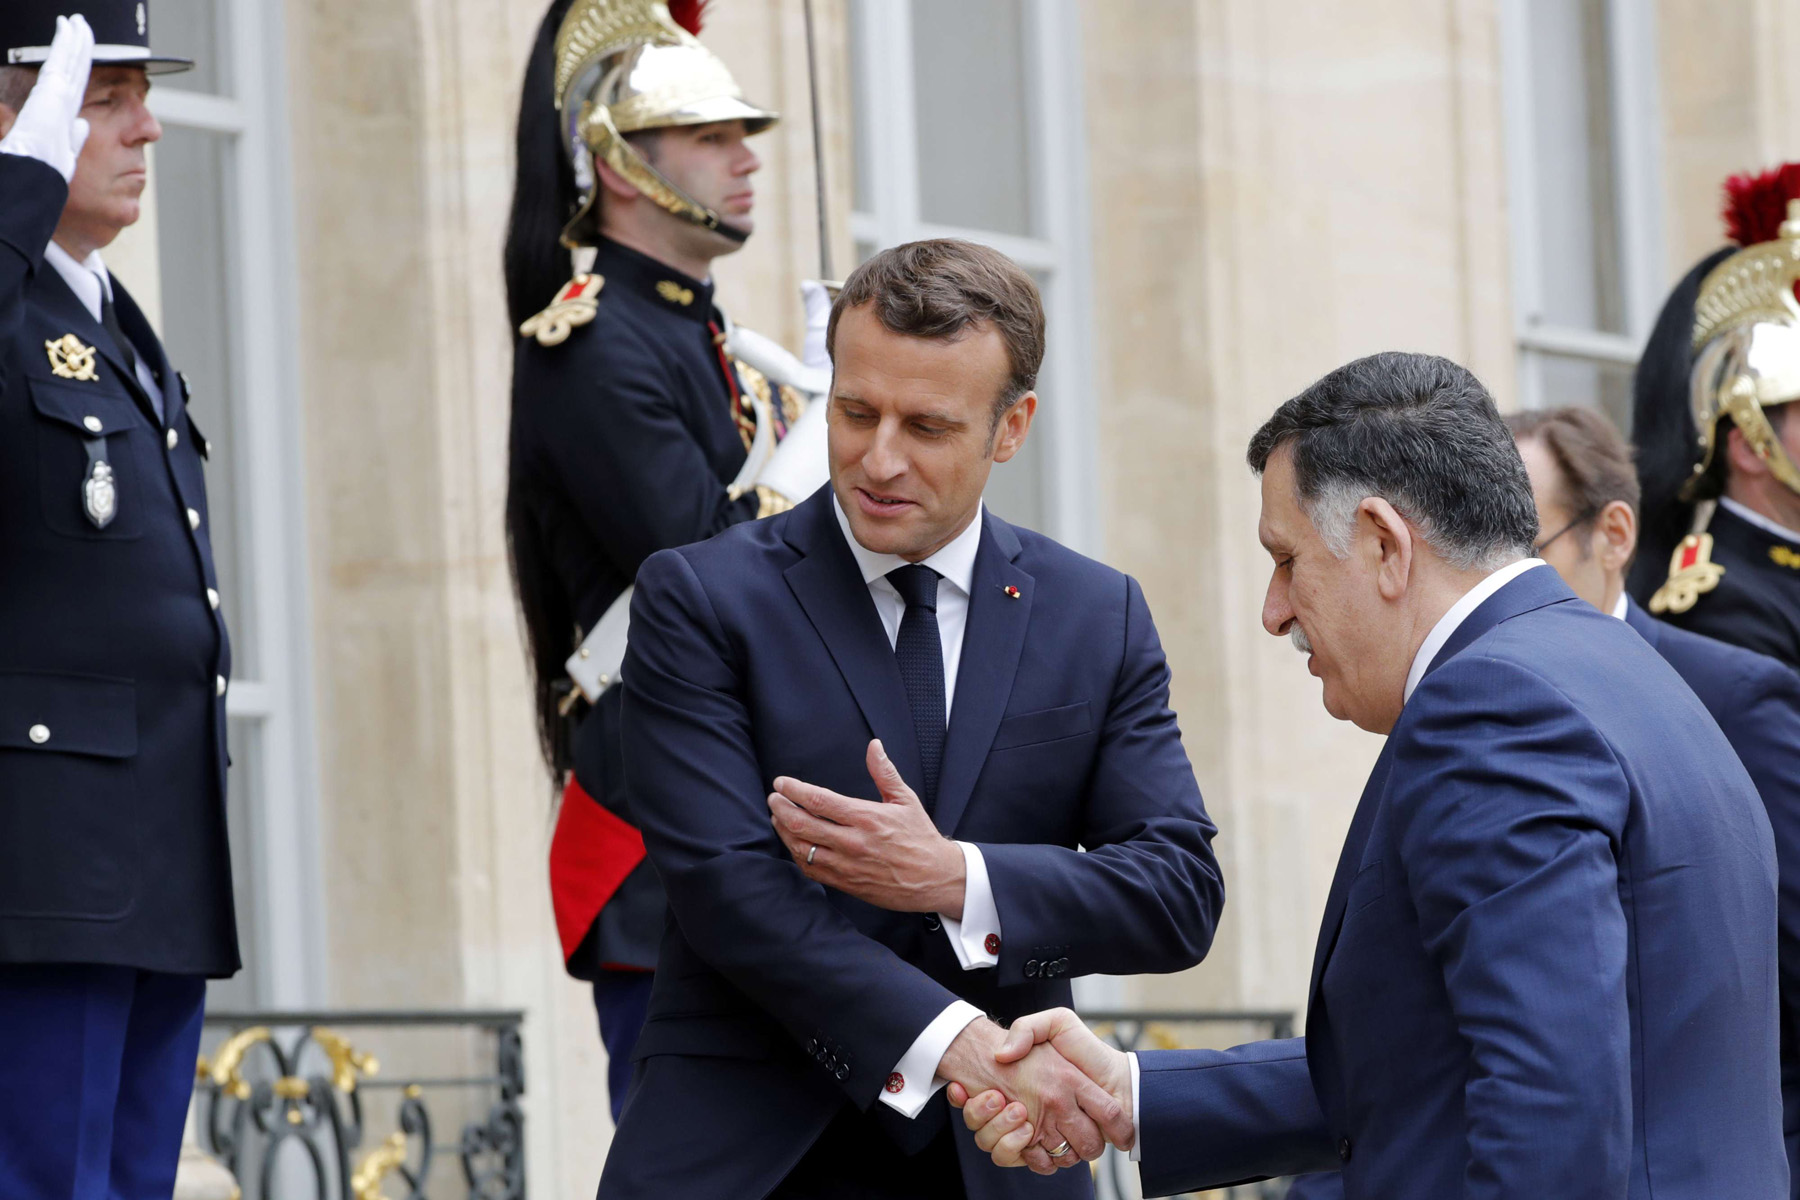 French president Emmanuel Macron meets Libyan Prime Minister Fayez Al-Sarraj, who heads the UN-backed government in Tripoli at the Elysee Palace in Paris, France, May 8, 2019. (Reuters)